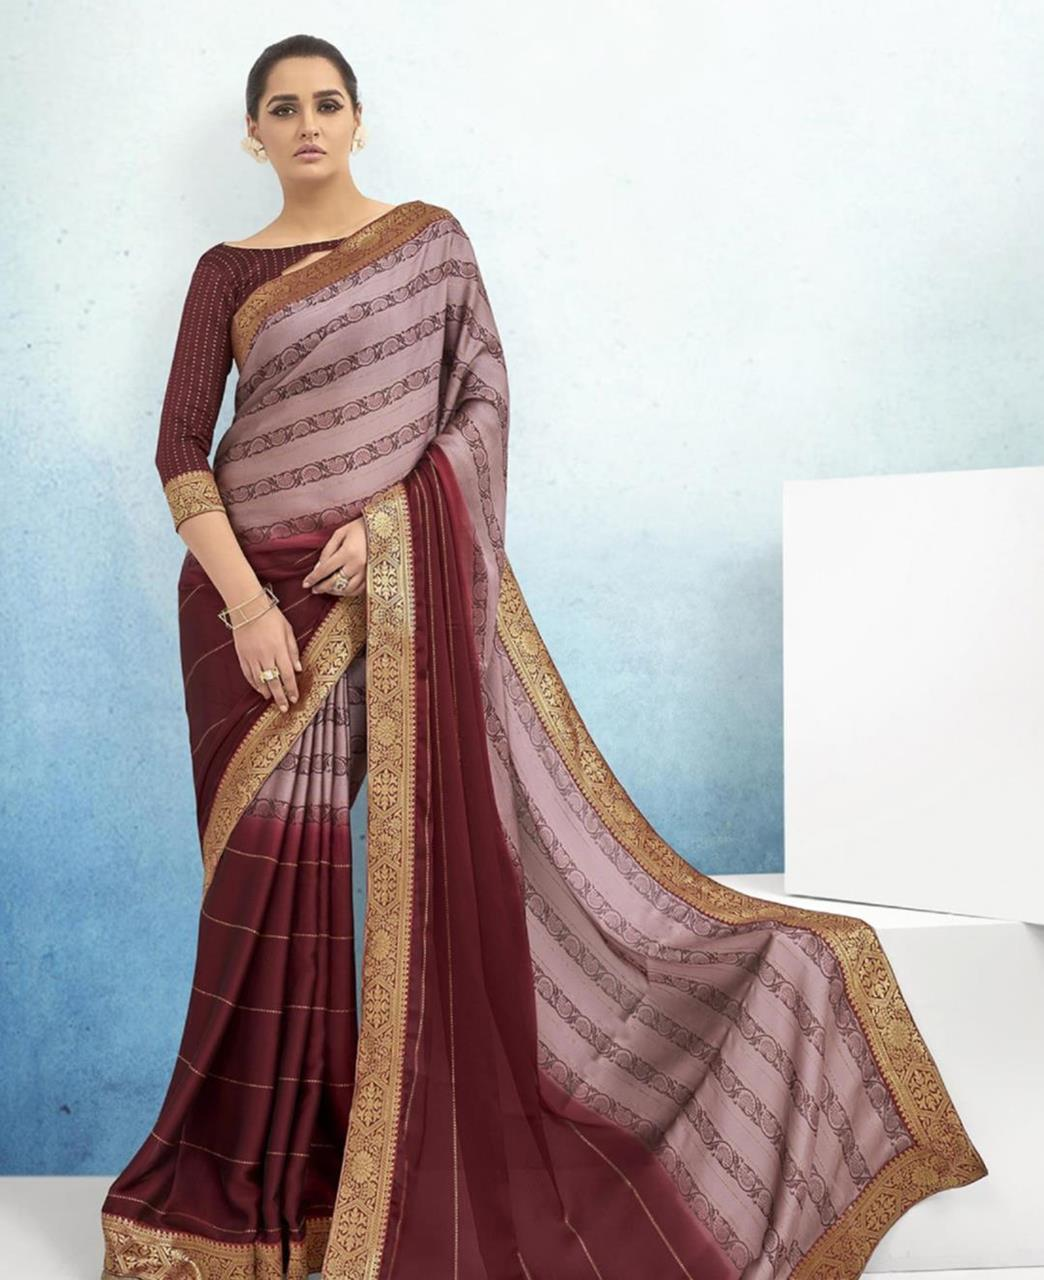 Lace Chiffon Saree in Maroon